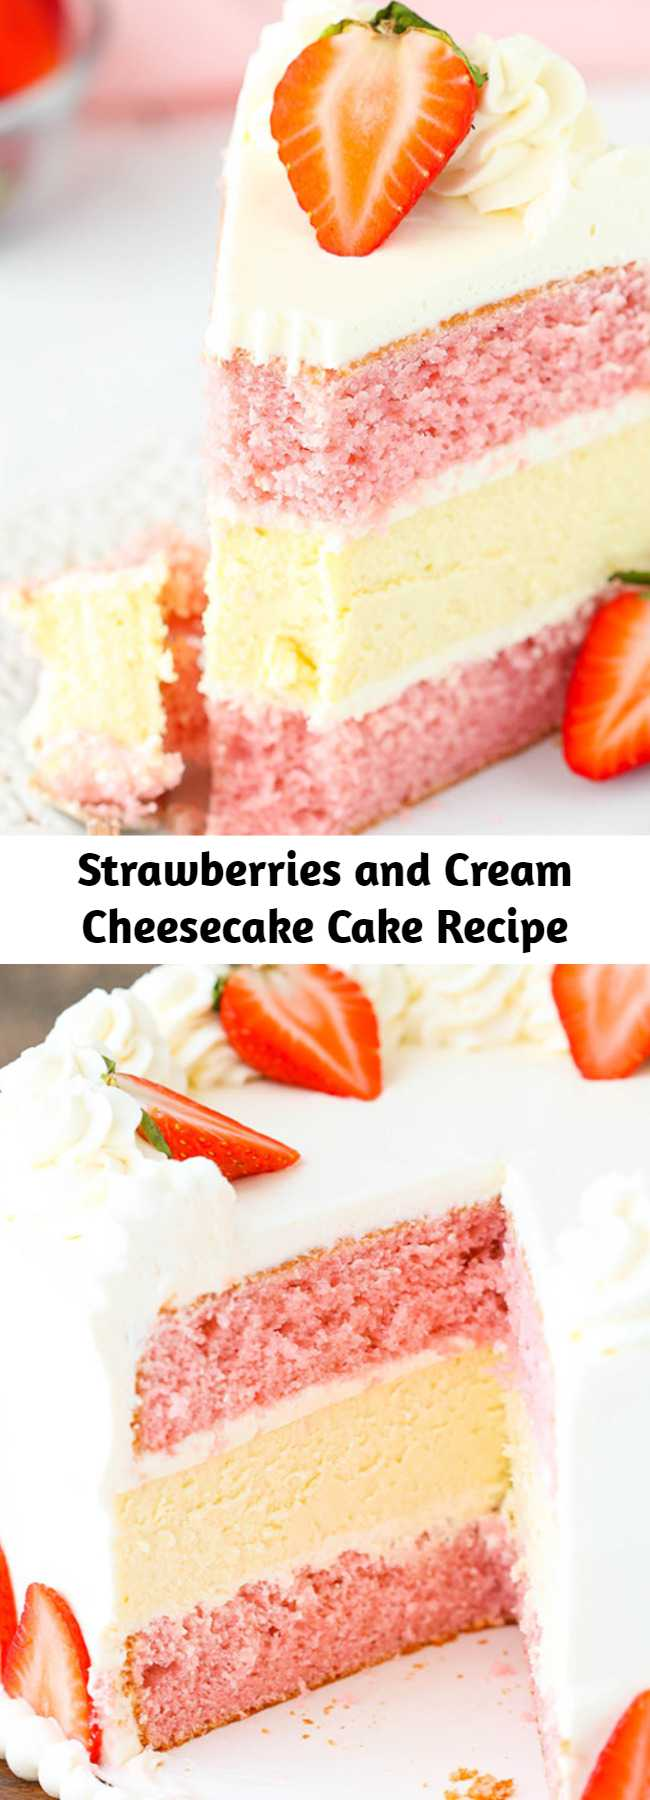 Strawberries and Cream Cheesecake Cake Recipe - This Strawberries and Cream Cheesecake Cake is perfect in every way! With two layers of strawberry cake and a creamy layer of vanilla cheesecake in the middle, this cake is no joke.